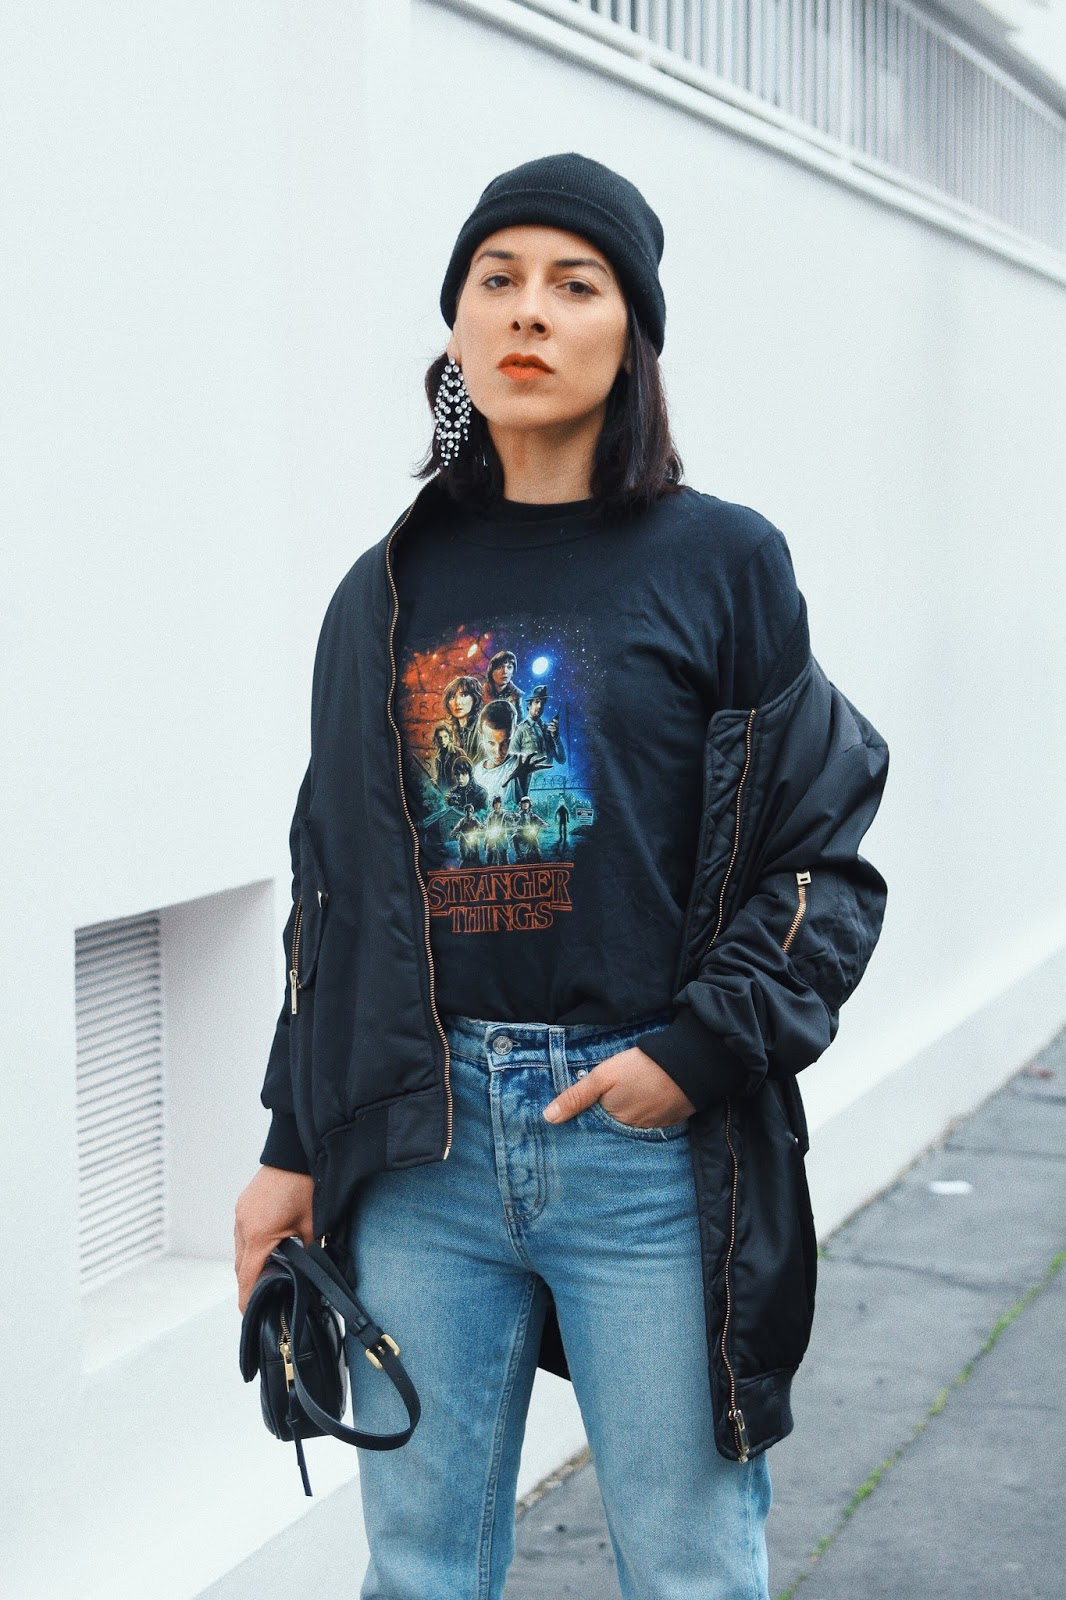 bottines blanche t-shirt strangers things idée de look printemps